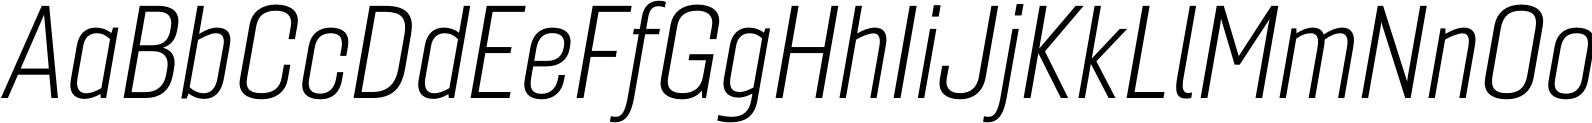 Gineso Cond Light Italic Font